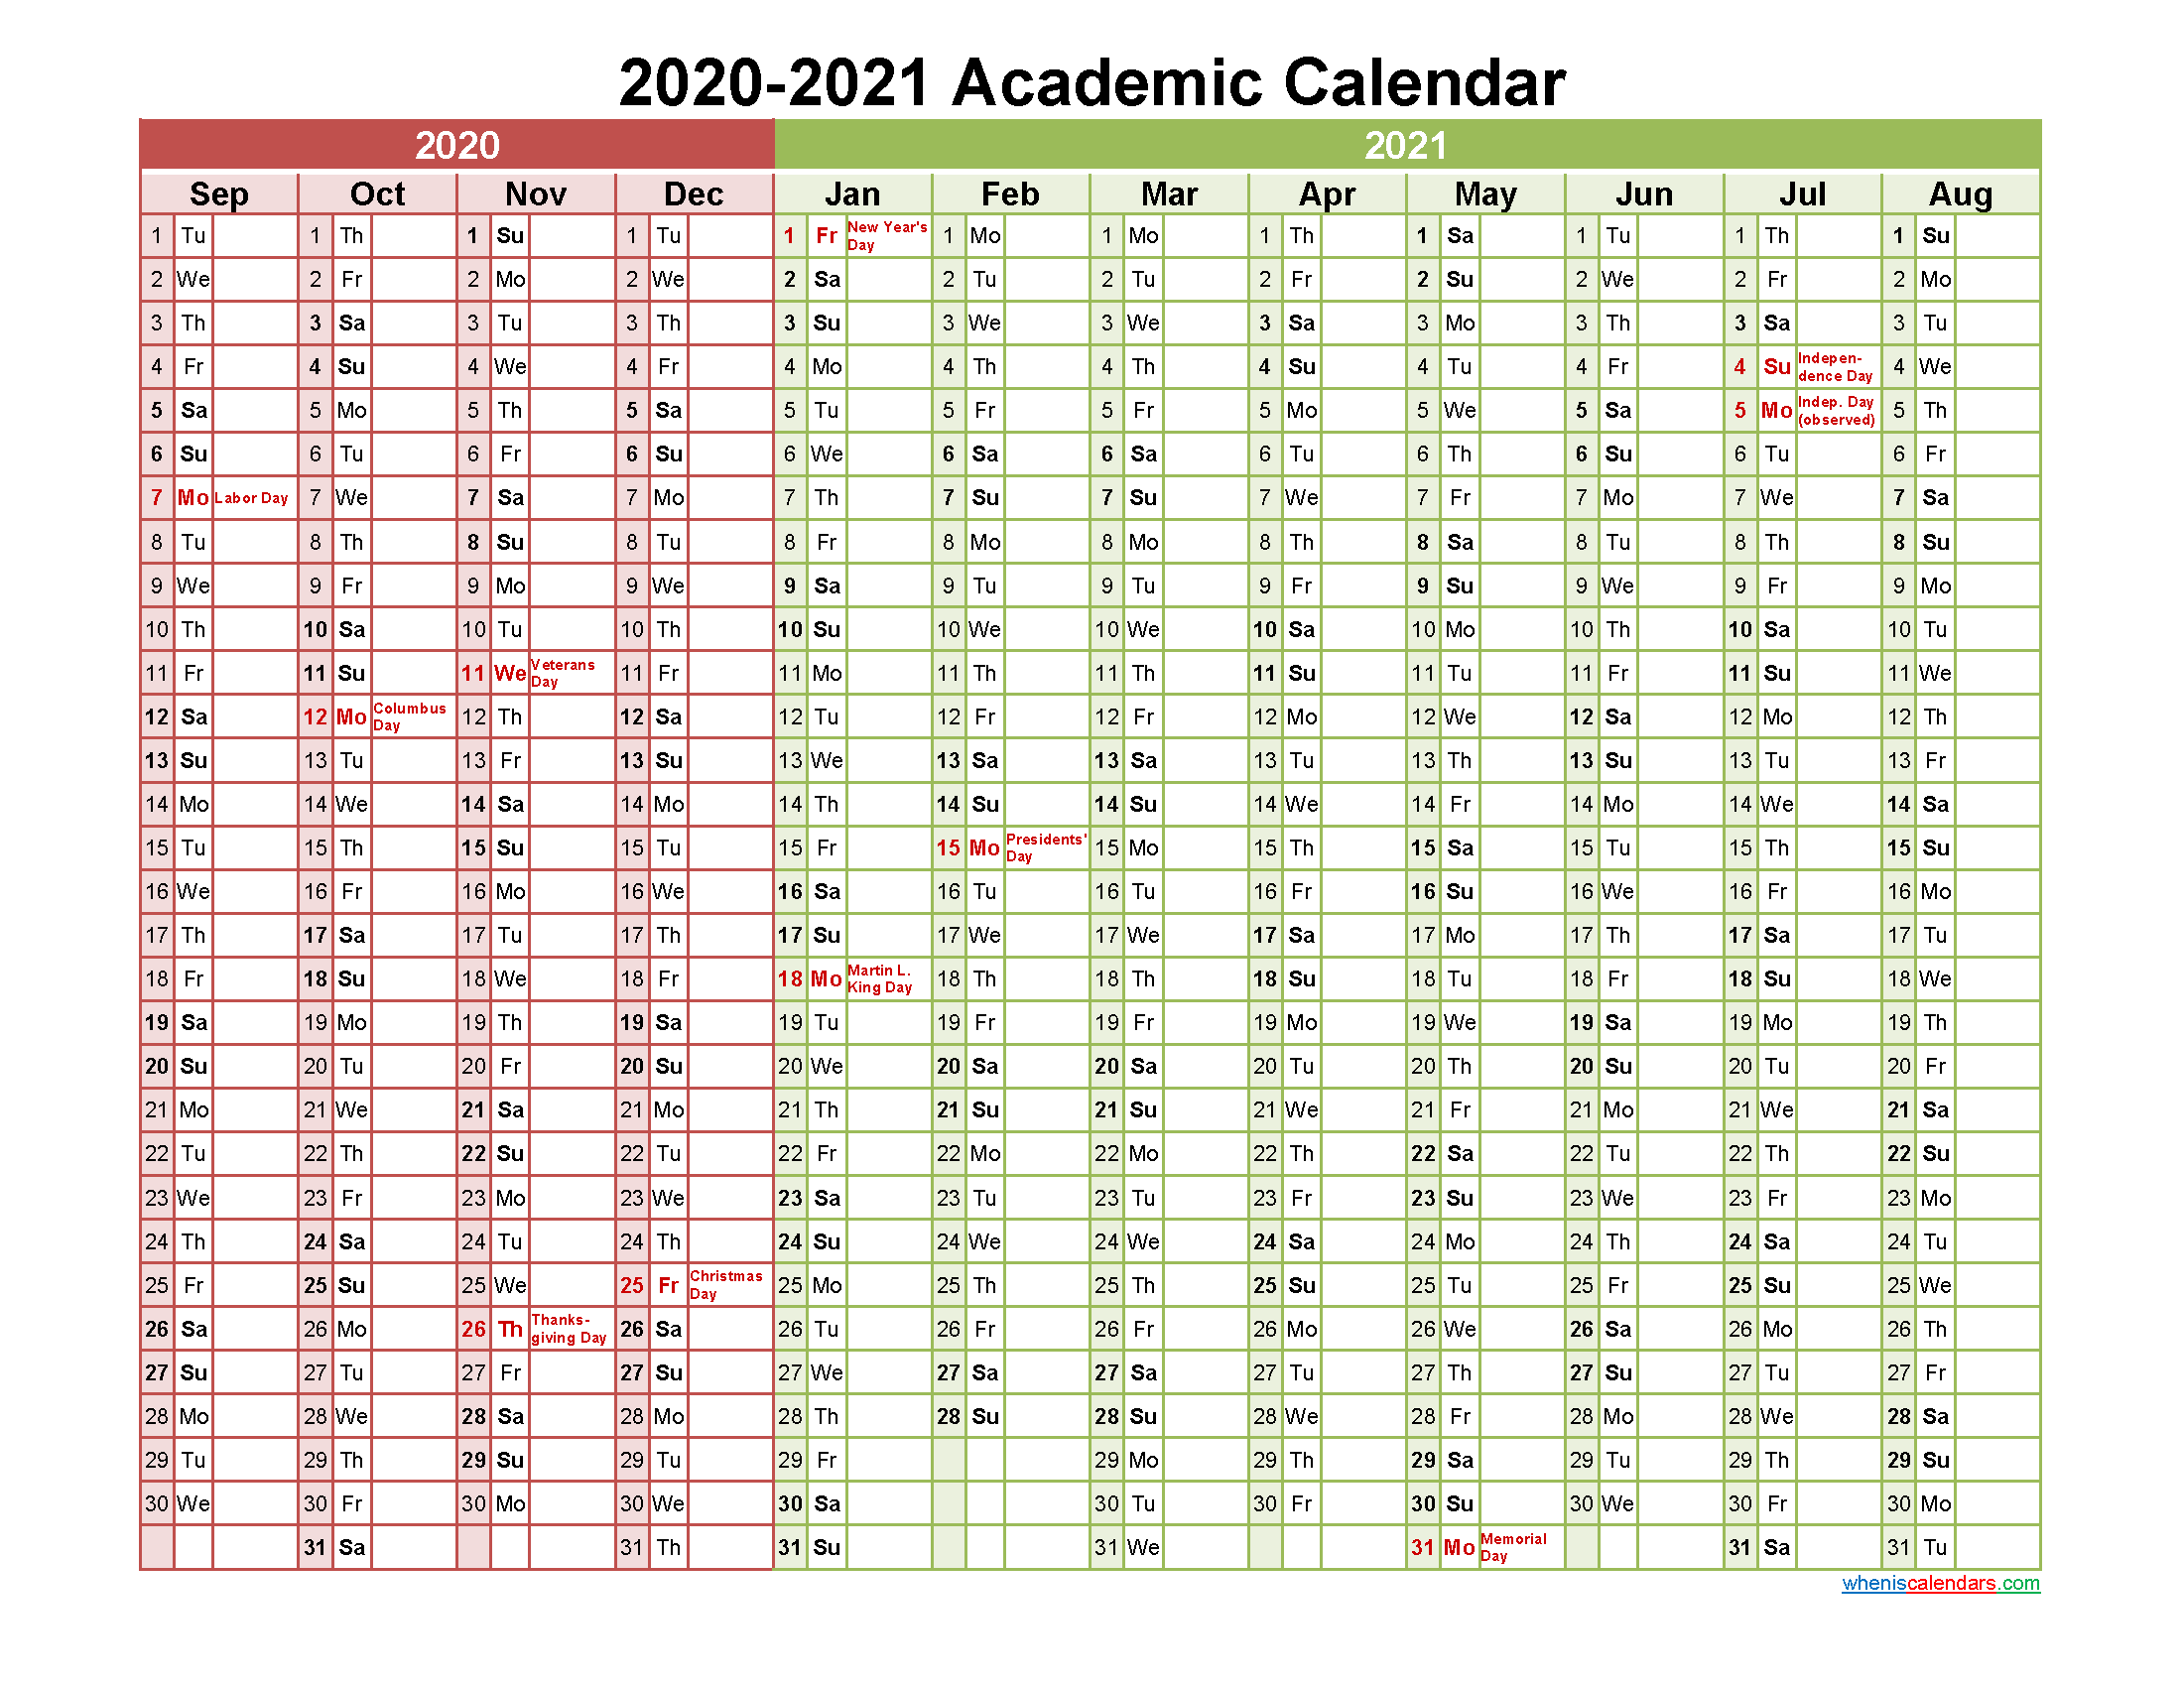 Academic Calendar 2020 and 2021 Printable (Landscape ...